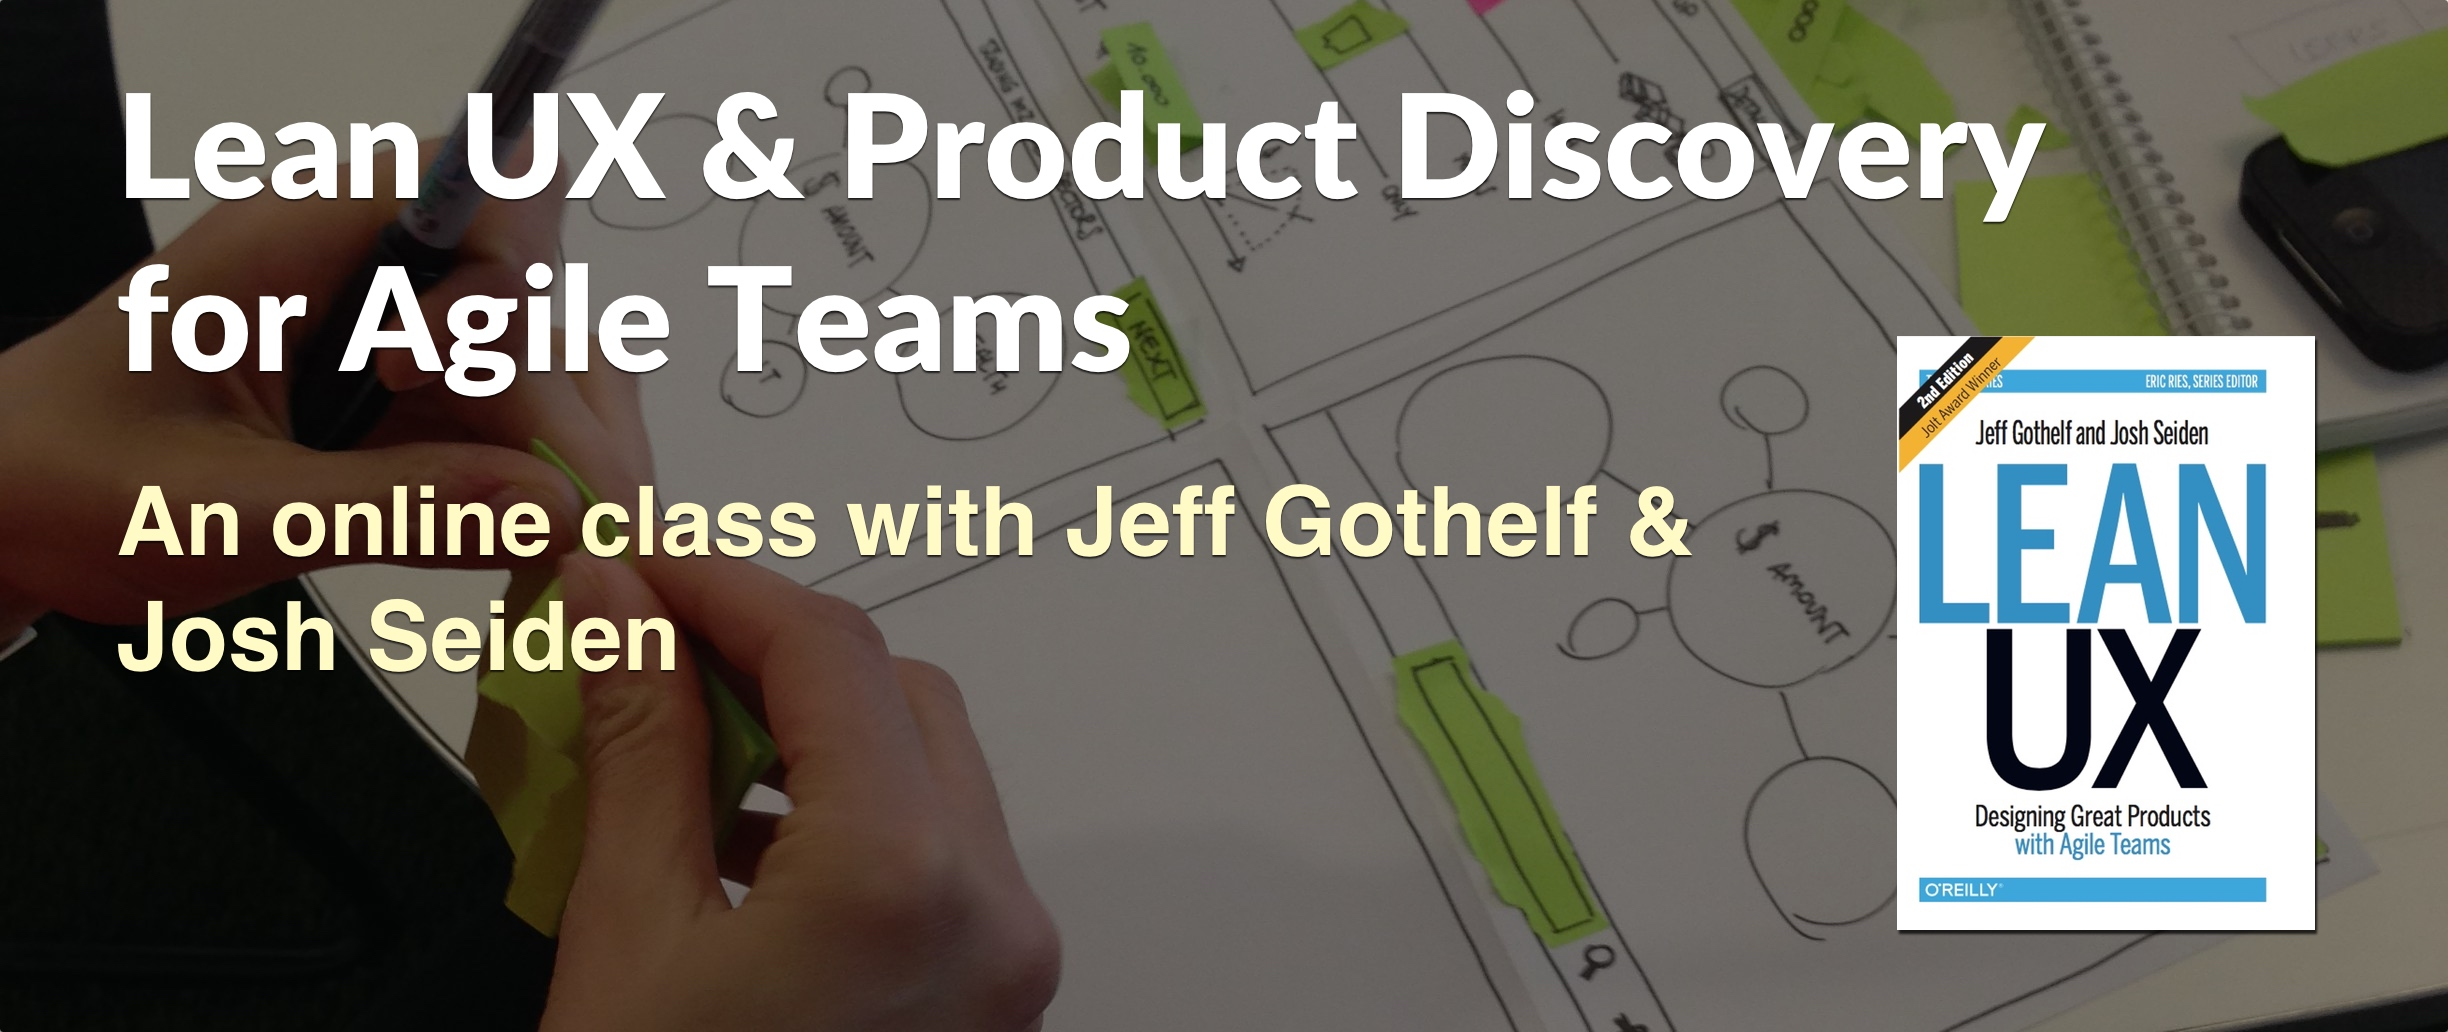 Lean UX & Product Discovery for Agile Teams an online class with Jeff Gothelf and Josh Seiden